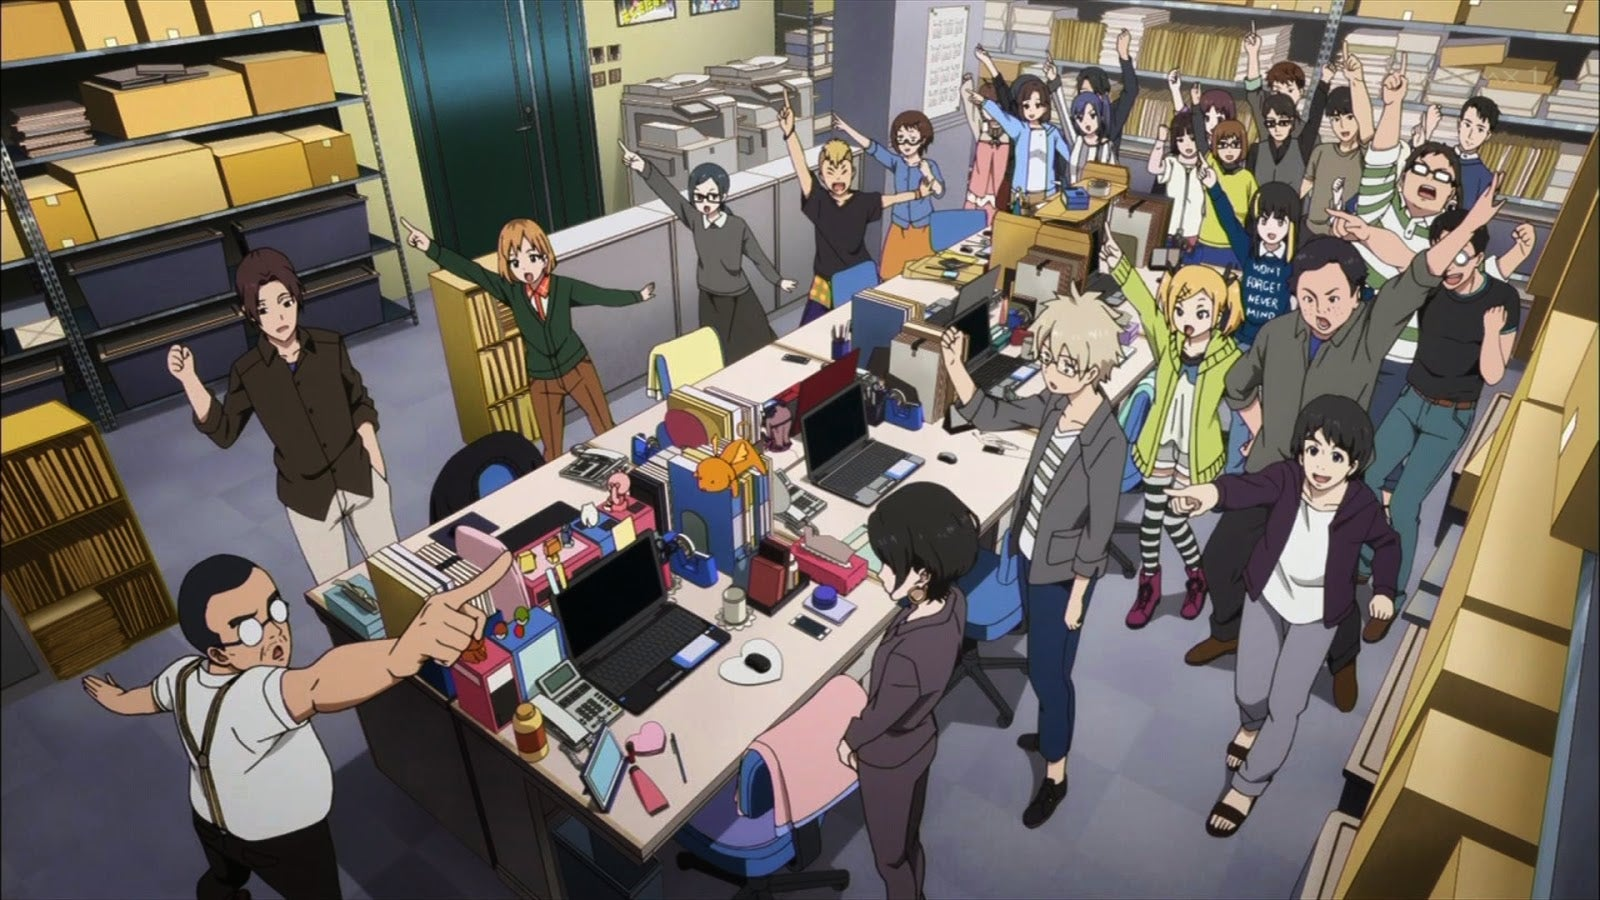 For an Anime Studio, This Looks Pretty Nice